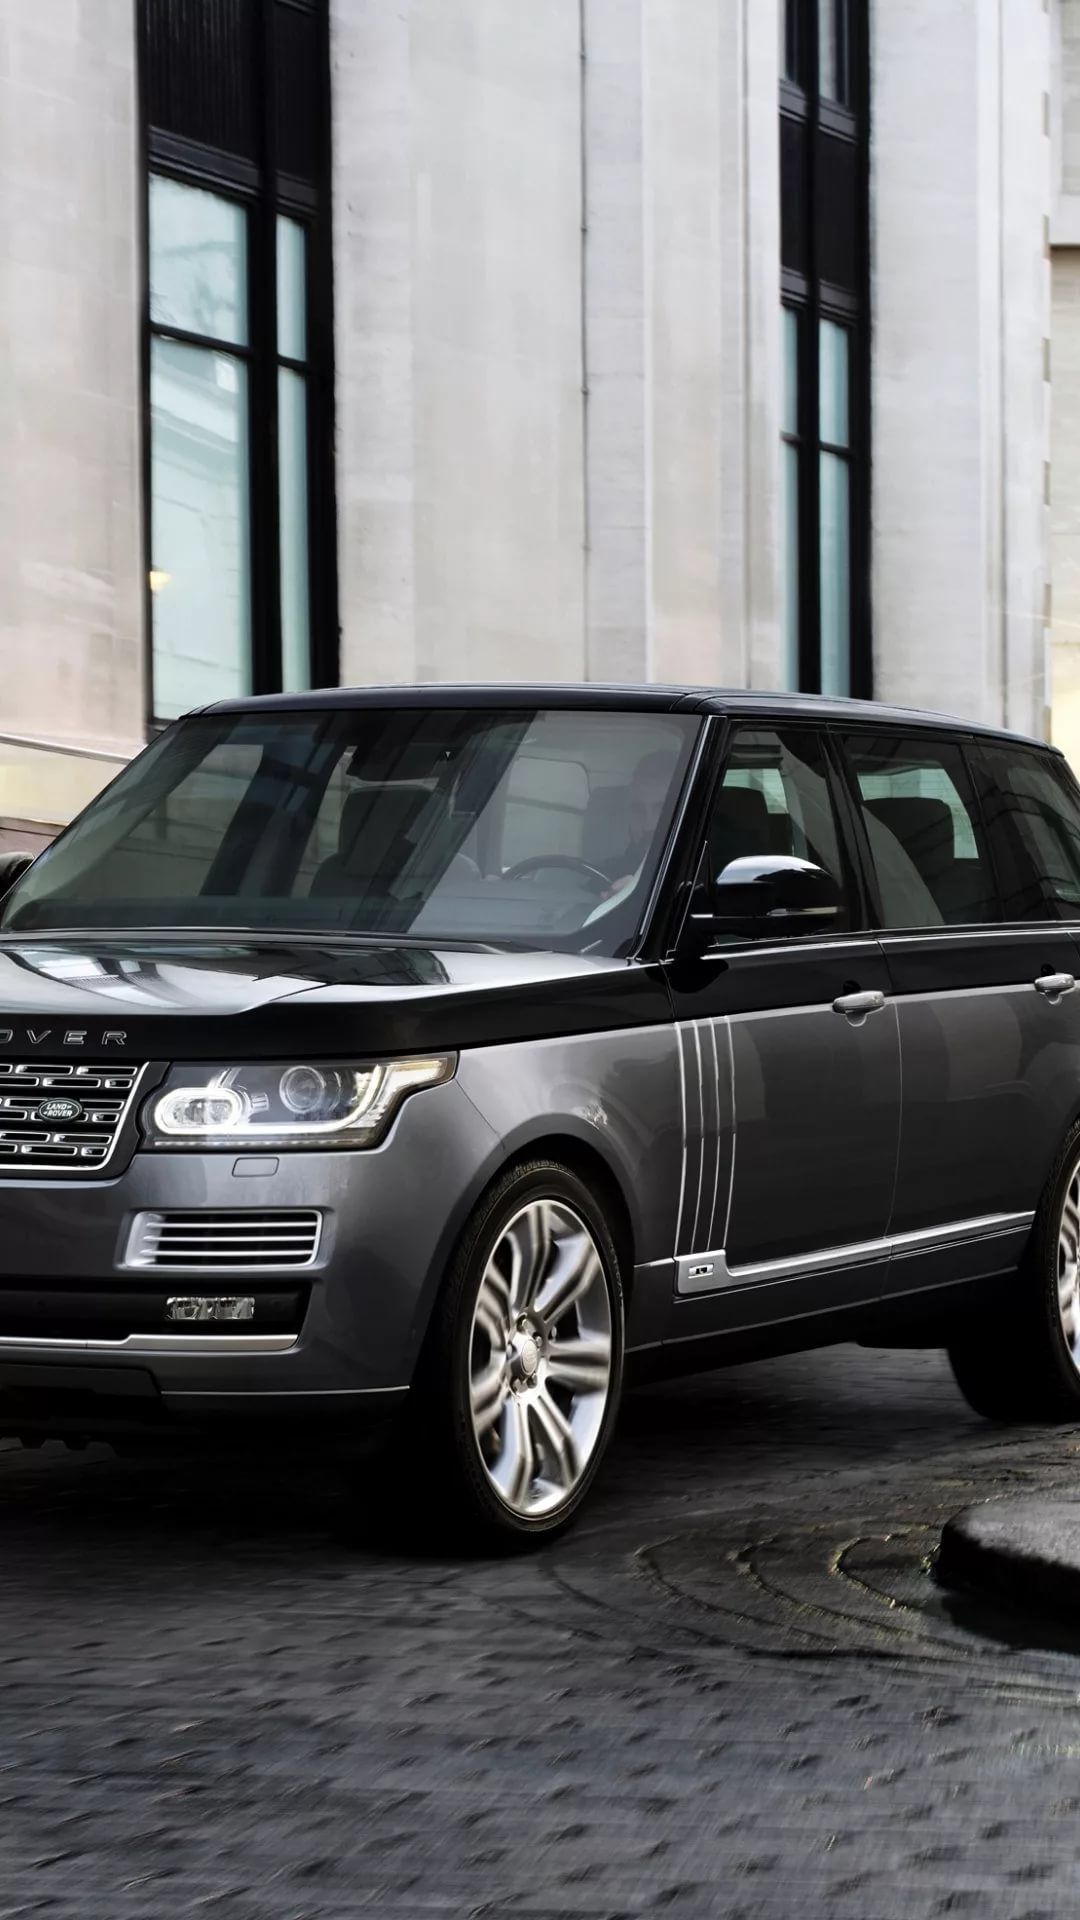 Range Rover wallpaper iPhone